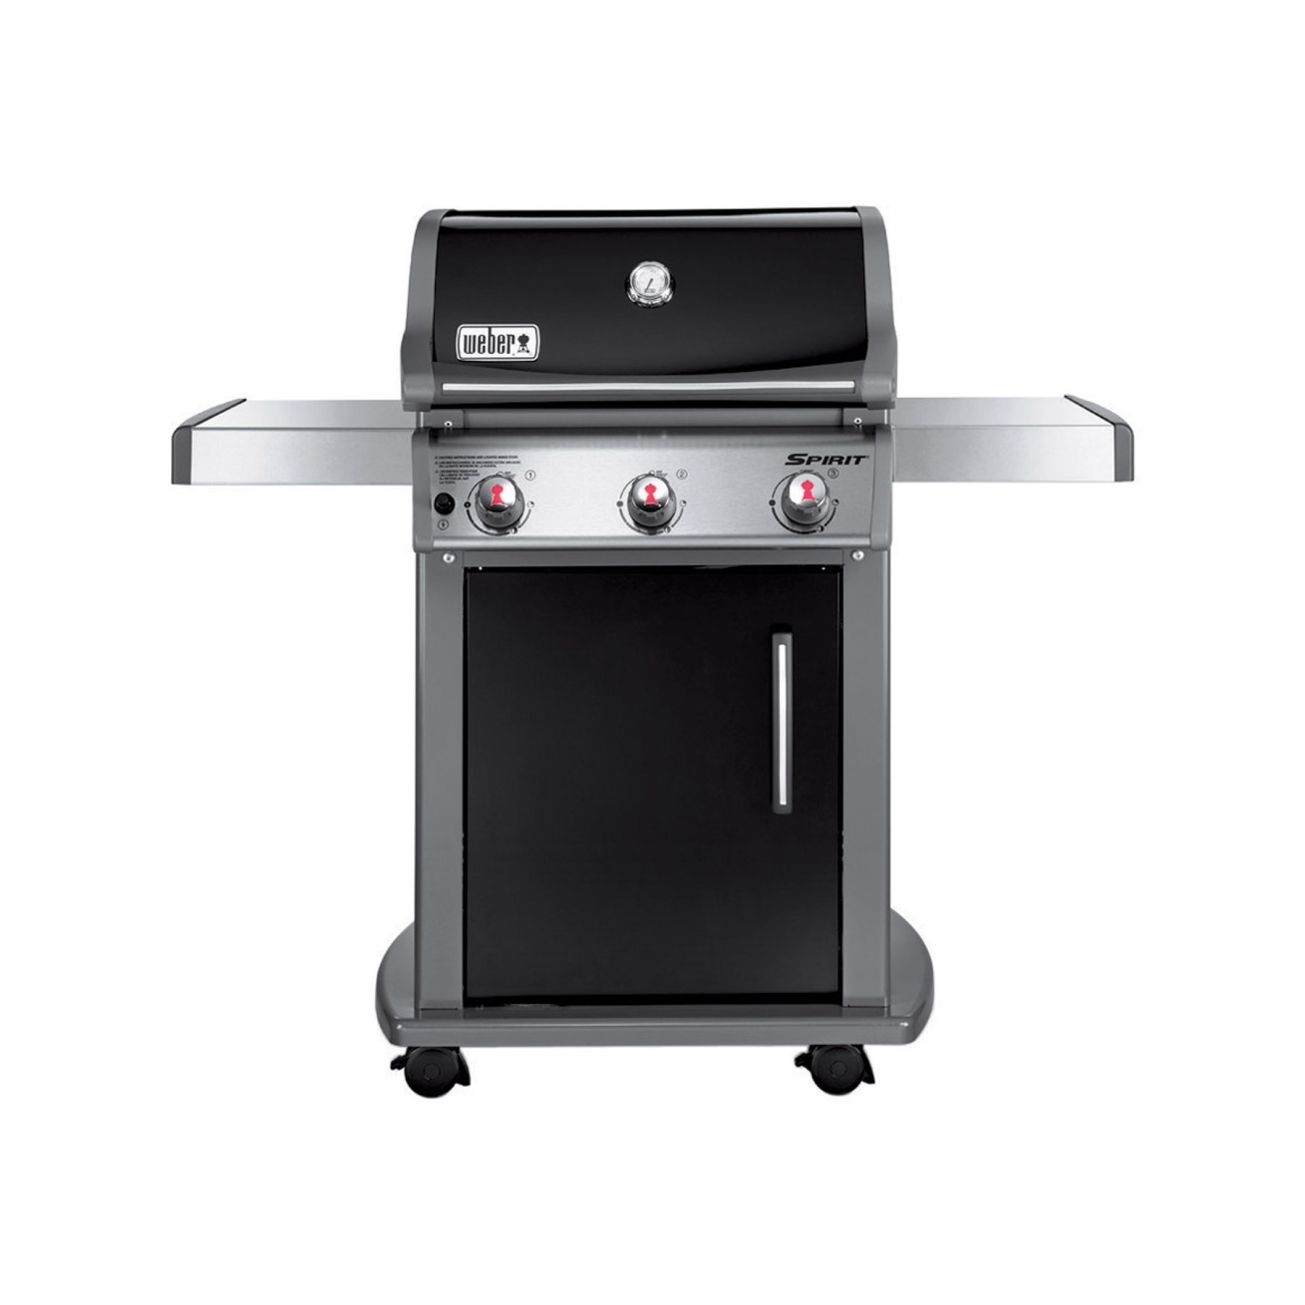 Weber Spirit E 310 Natural Gas Grill 47510001 Gas Grills Ace Hardware Cook S Illustrated Natural Gas Grill Weber Gas Grills Gas Grill Reviews